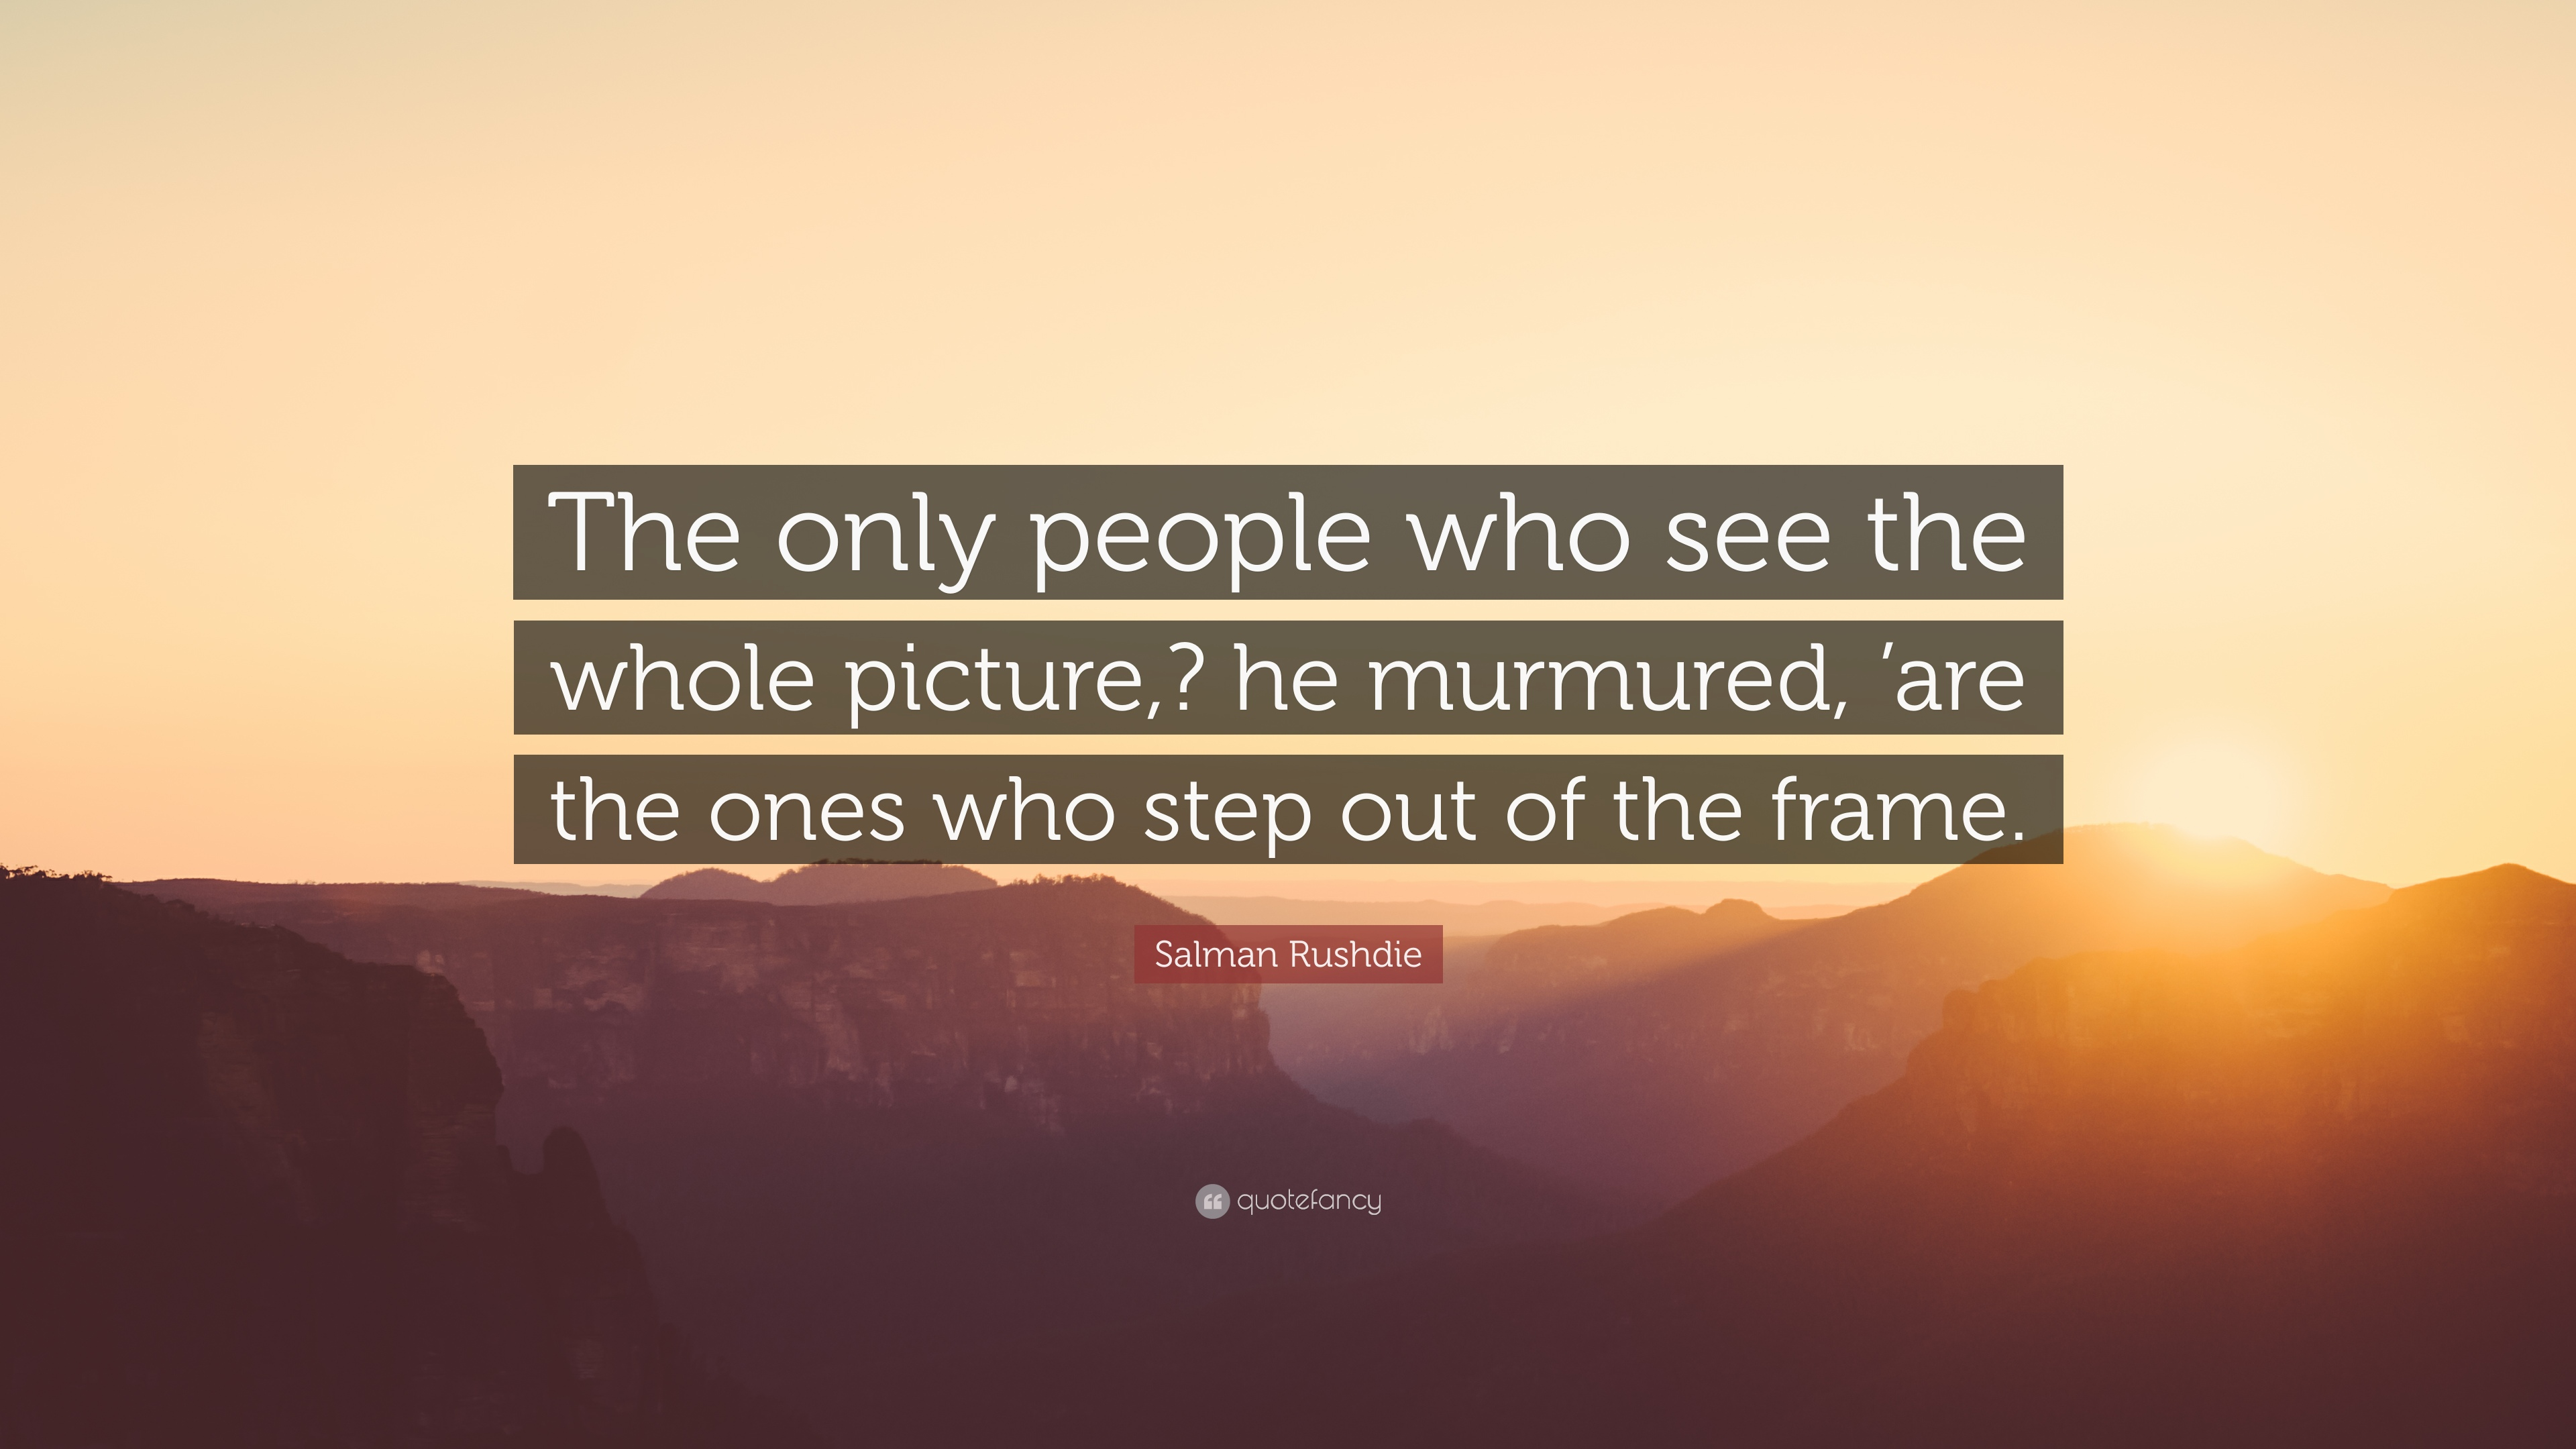 Salman rushdie quote the only people who see the whole picture salman rushdie quote the only people who see the whole picture he jeuxipadfo Gallery